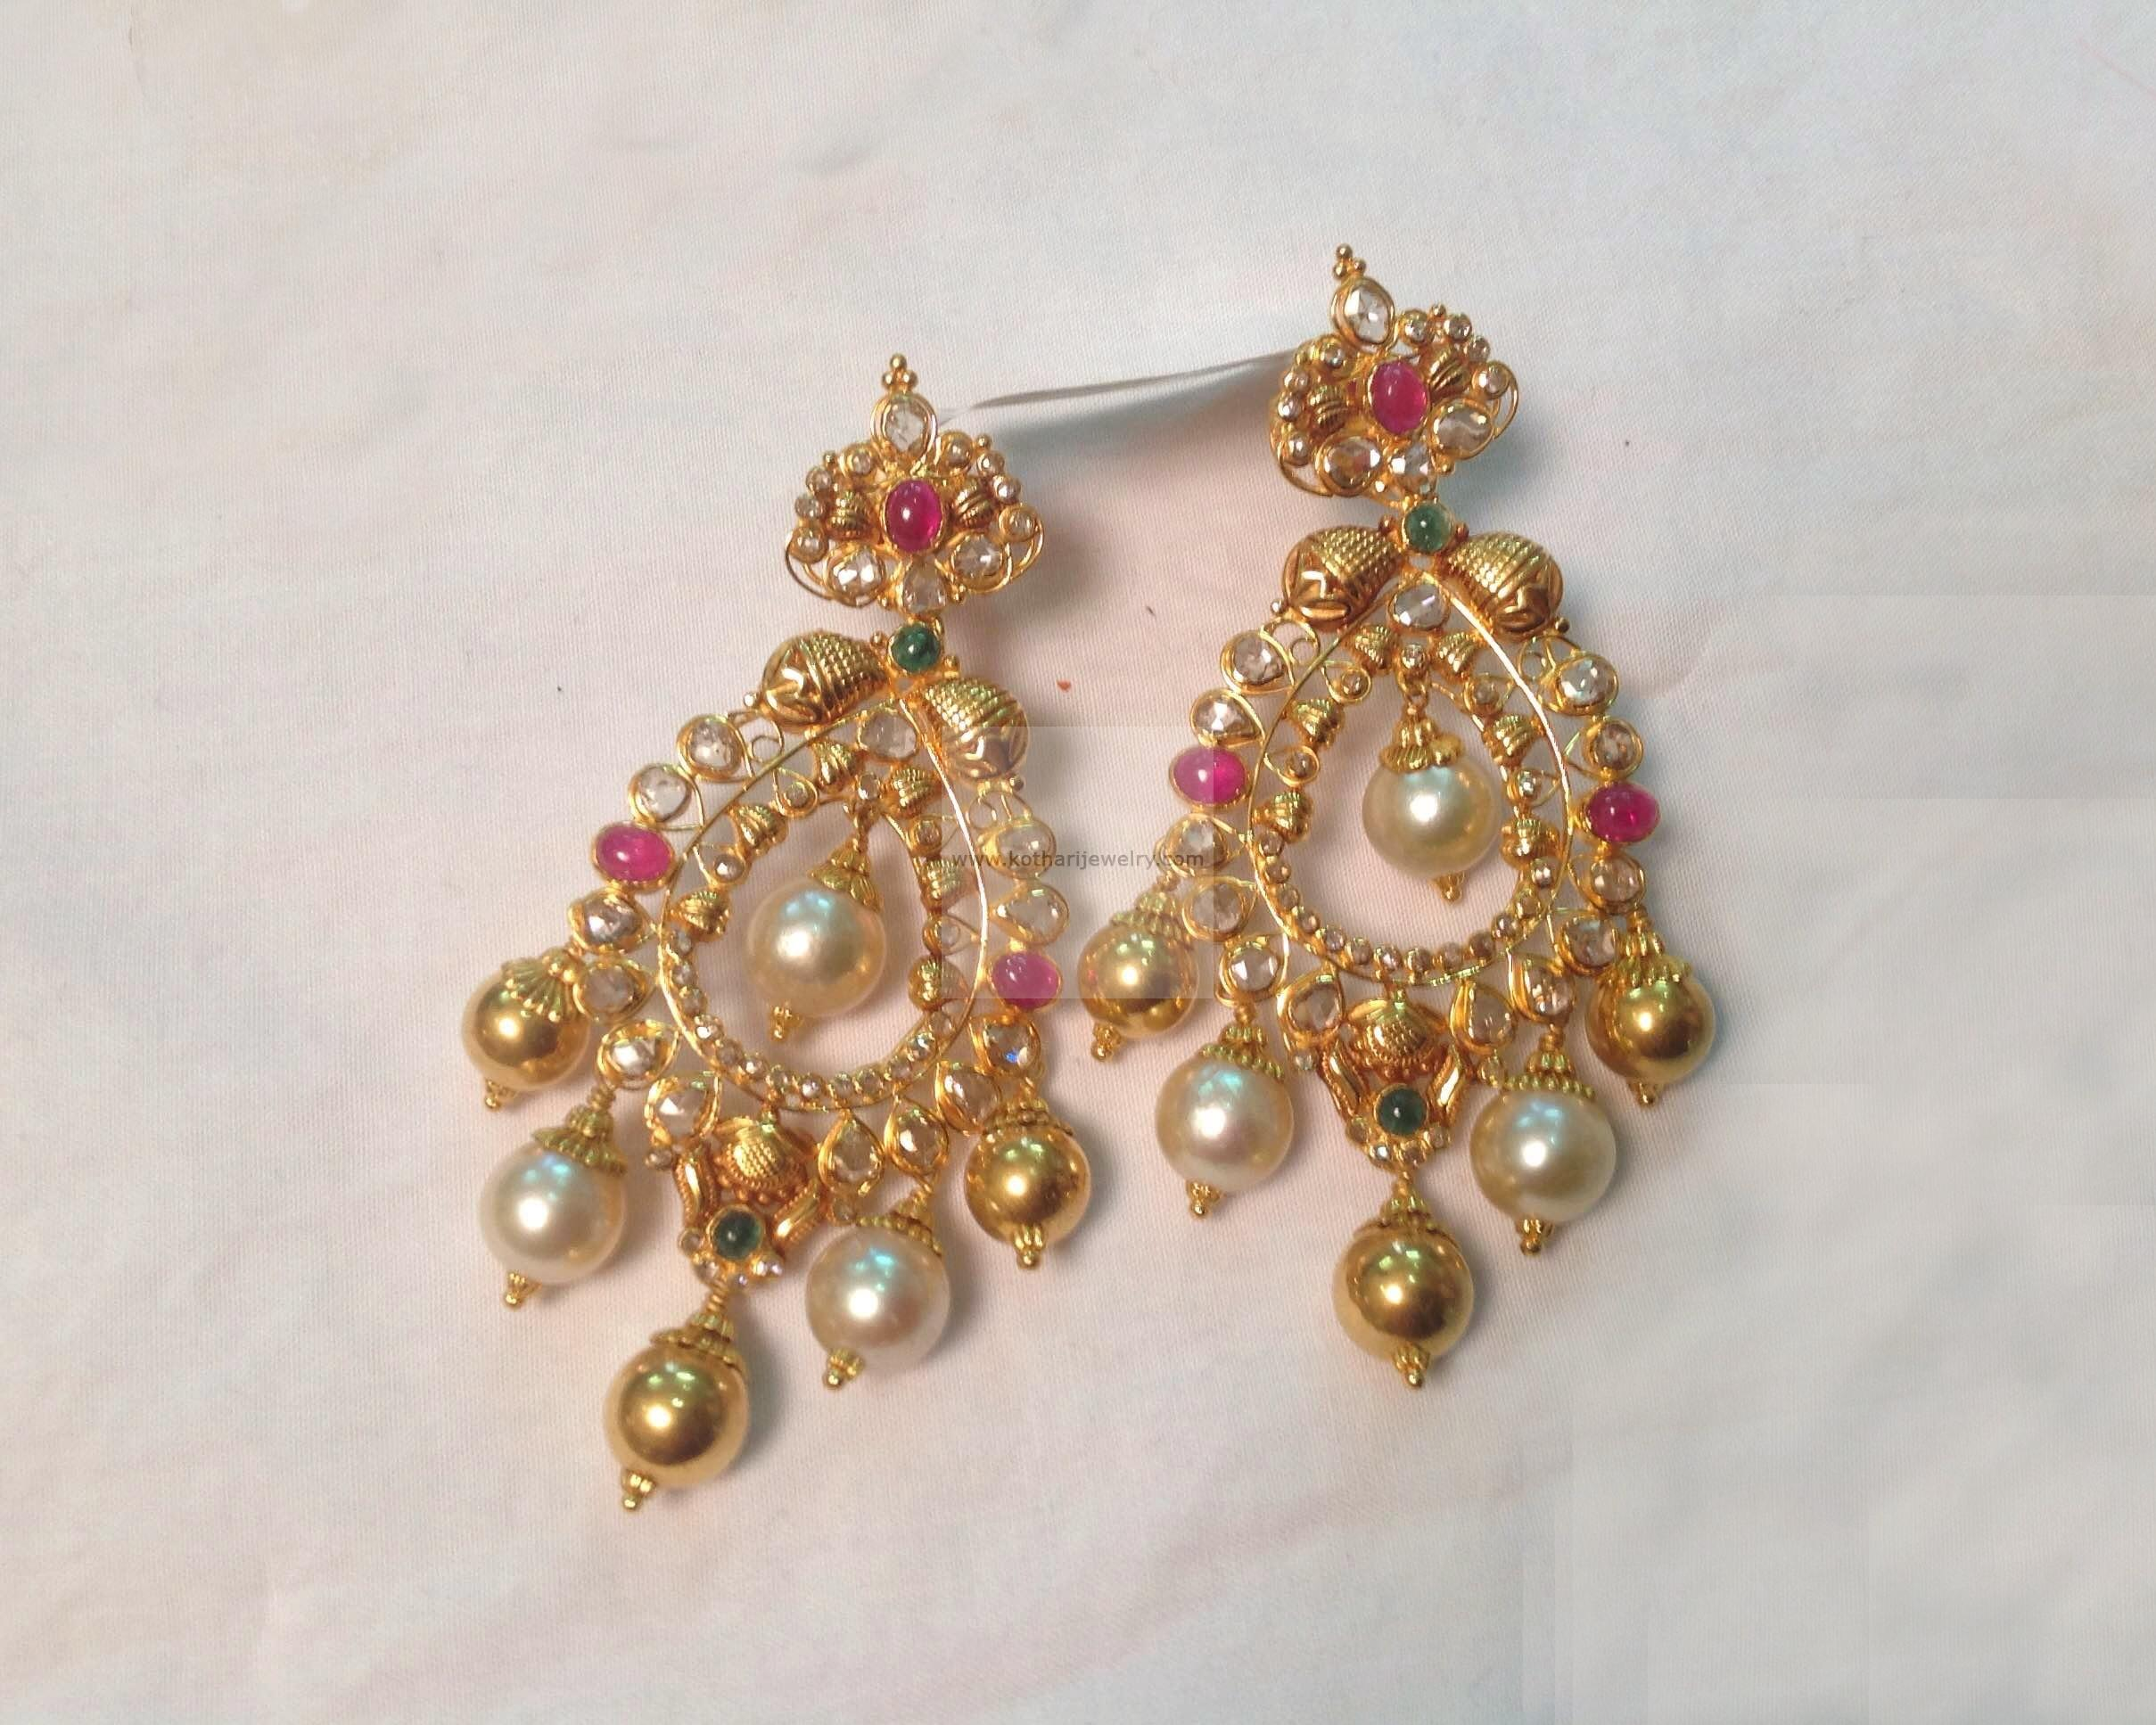 moda operandi mendoza and plated gold jordaan pin pinterest paula earrings